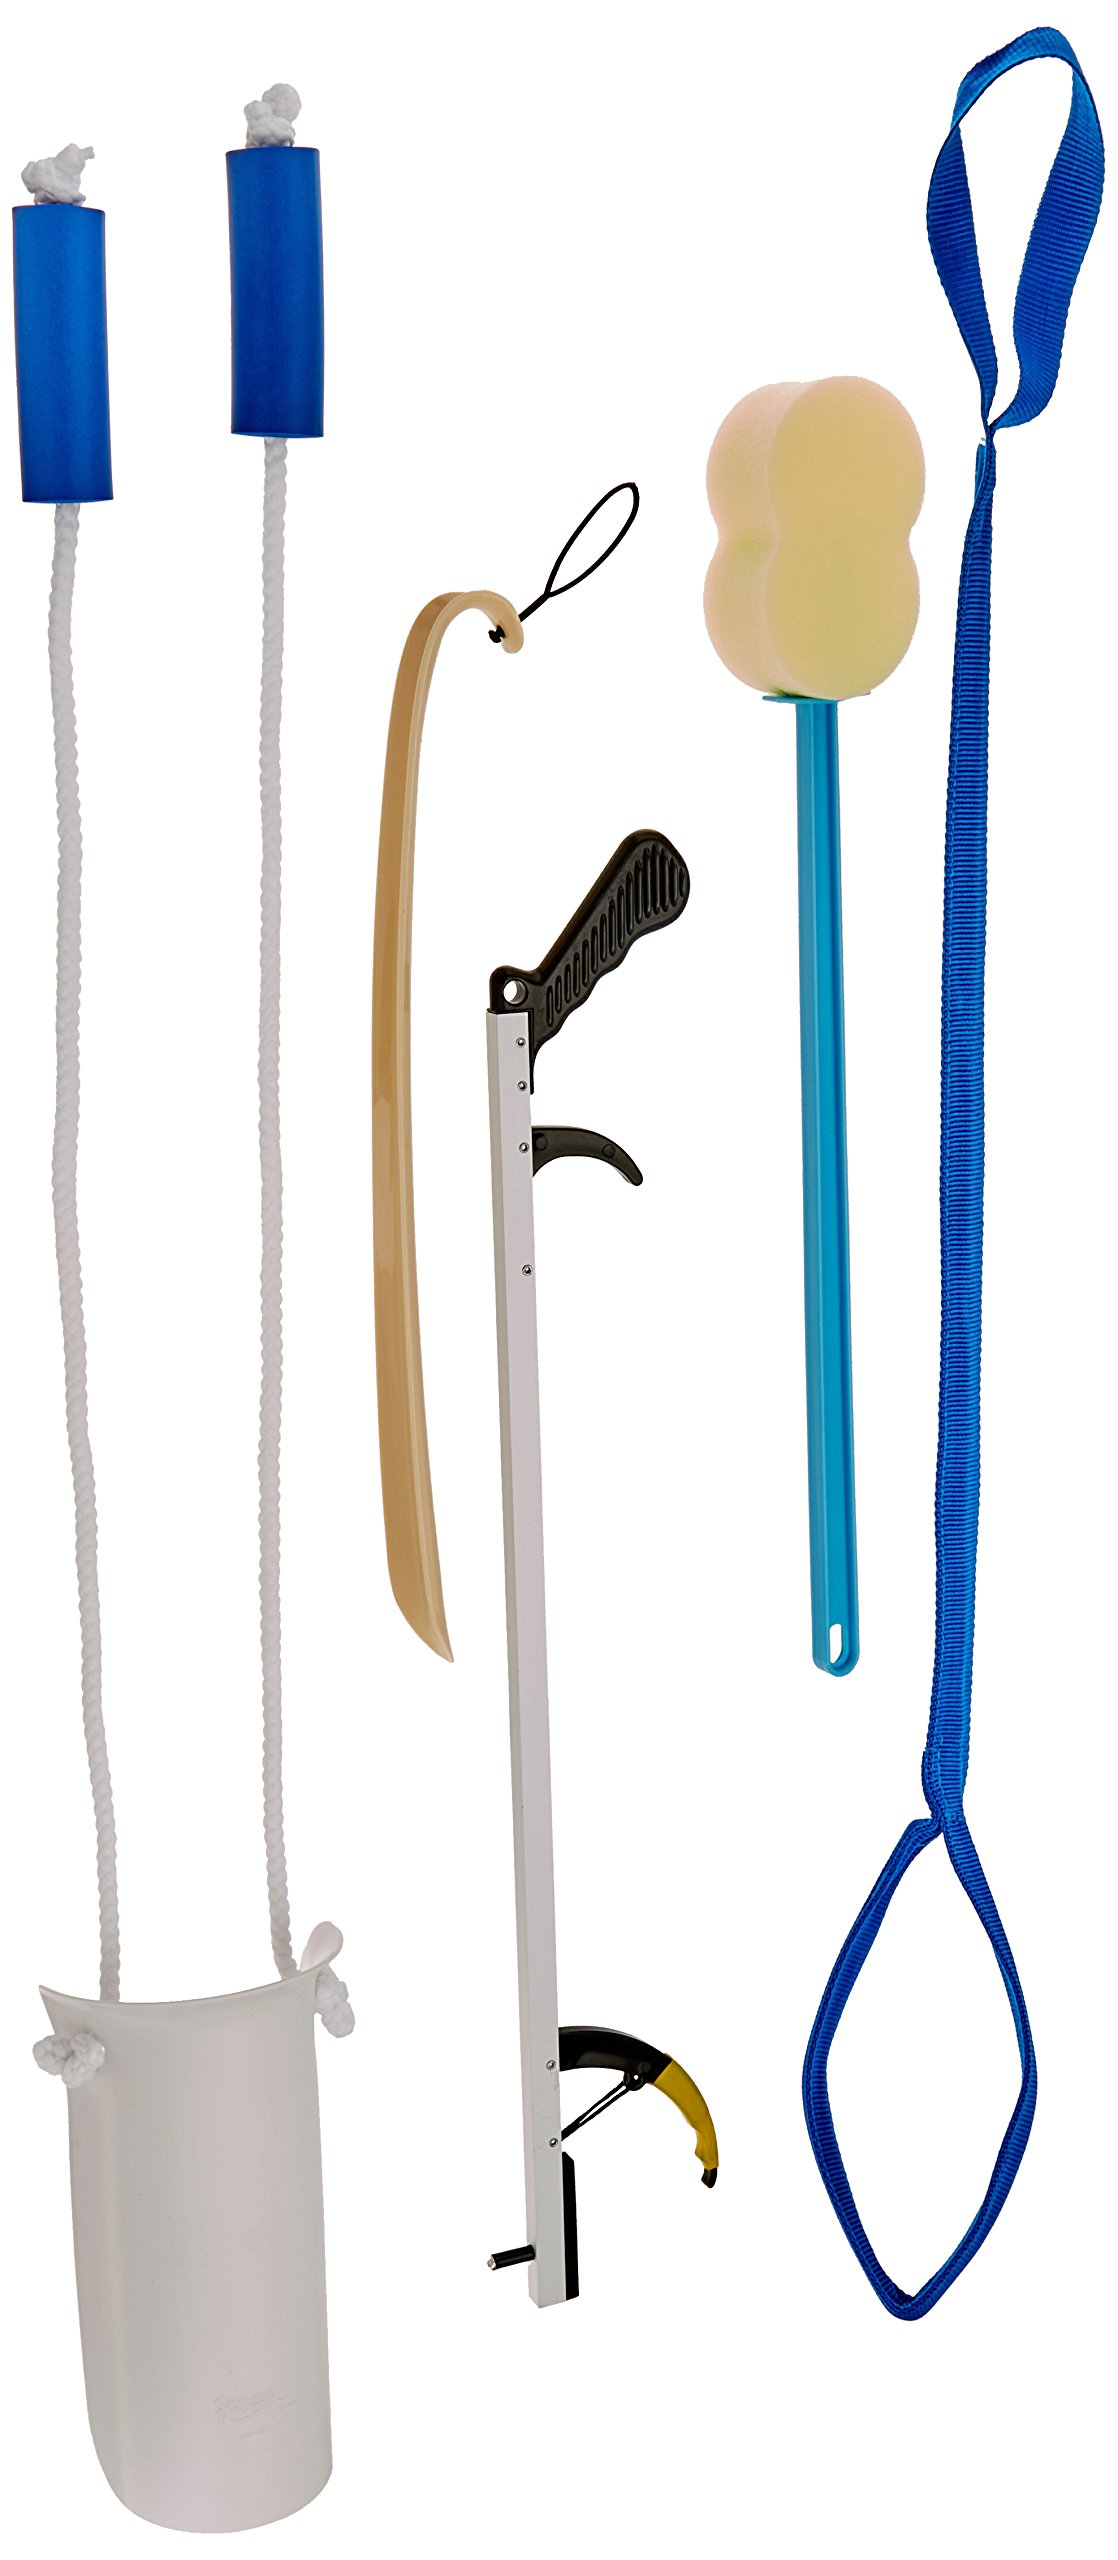 Sammons Preston Hip & Knee Equipment Kit with Assorted Daily Living Tools Including 32'' Reacher, Sock Aid with Handle, Plastic Shoe Horn, Bendable Contoured Handled Sponge, and Rigid Leg Lifter